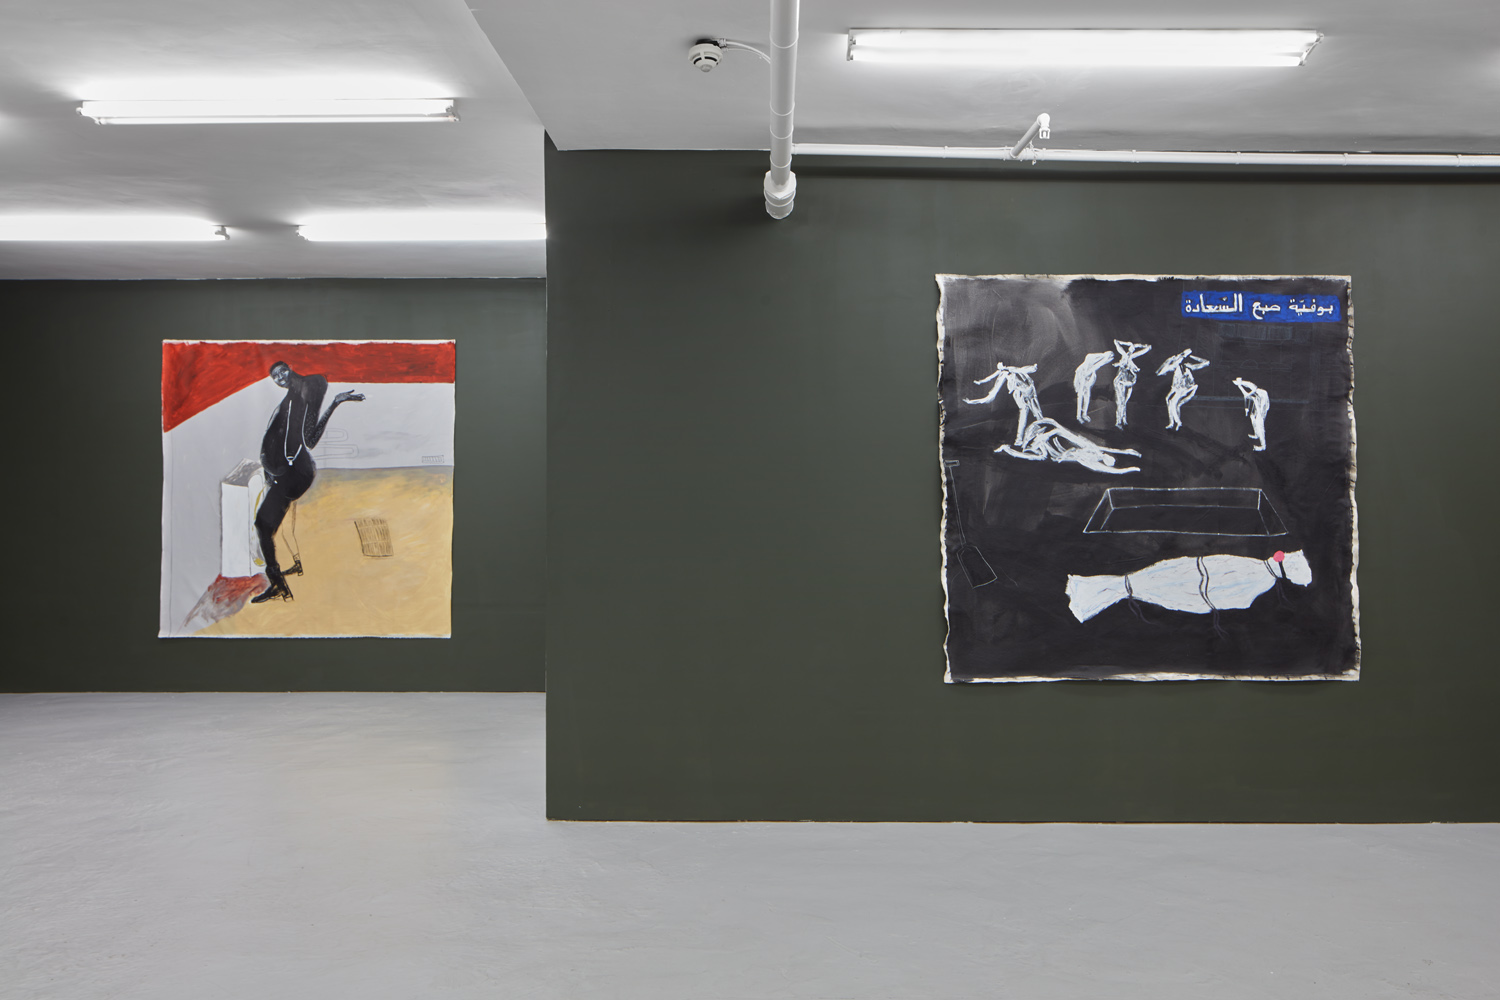 Installation view 10 Shadi Al-Atallah 'Fuck, I'm stuck!' J HAMMOND PROJECTS London 2019 low res.jpg